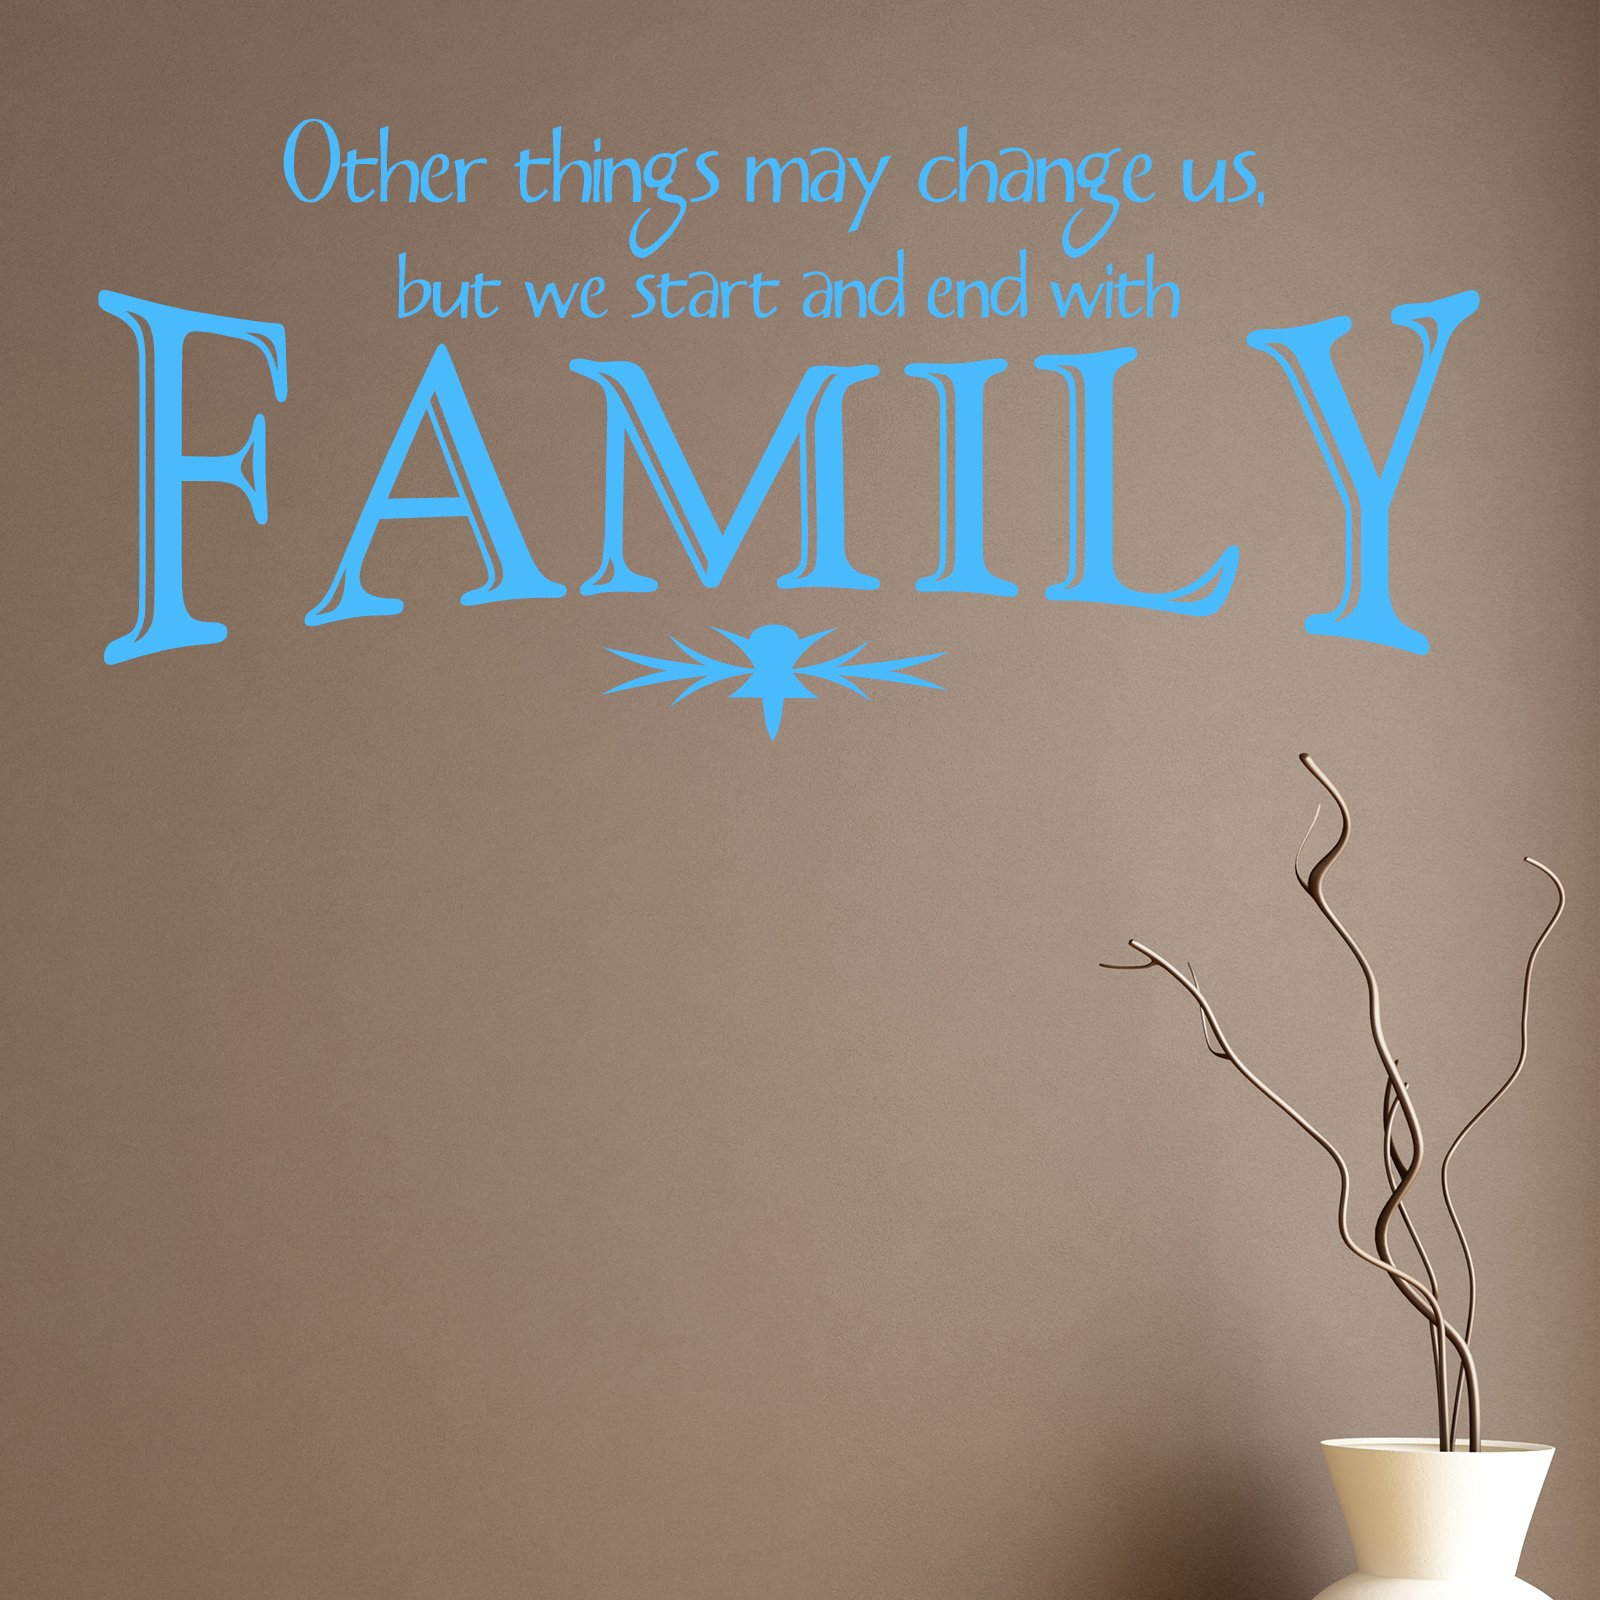 Other things may change us family quote wall sticker world of other things may change us family quote wall sticker world of wall stickers amipublicfo Gallery